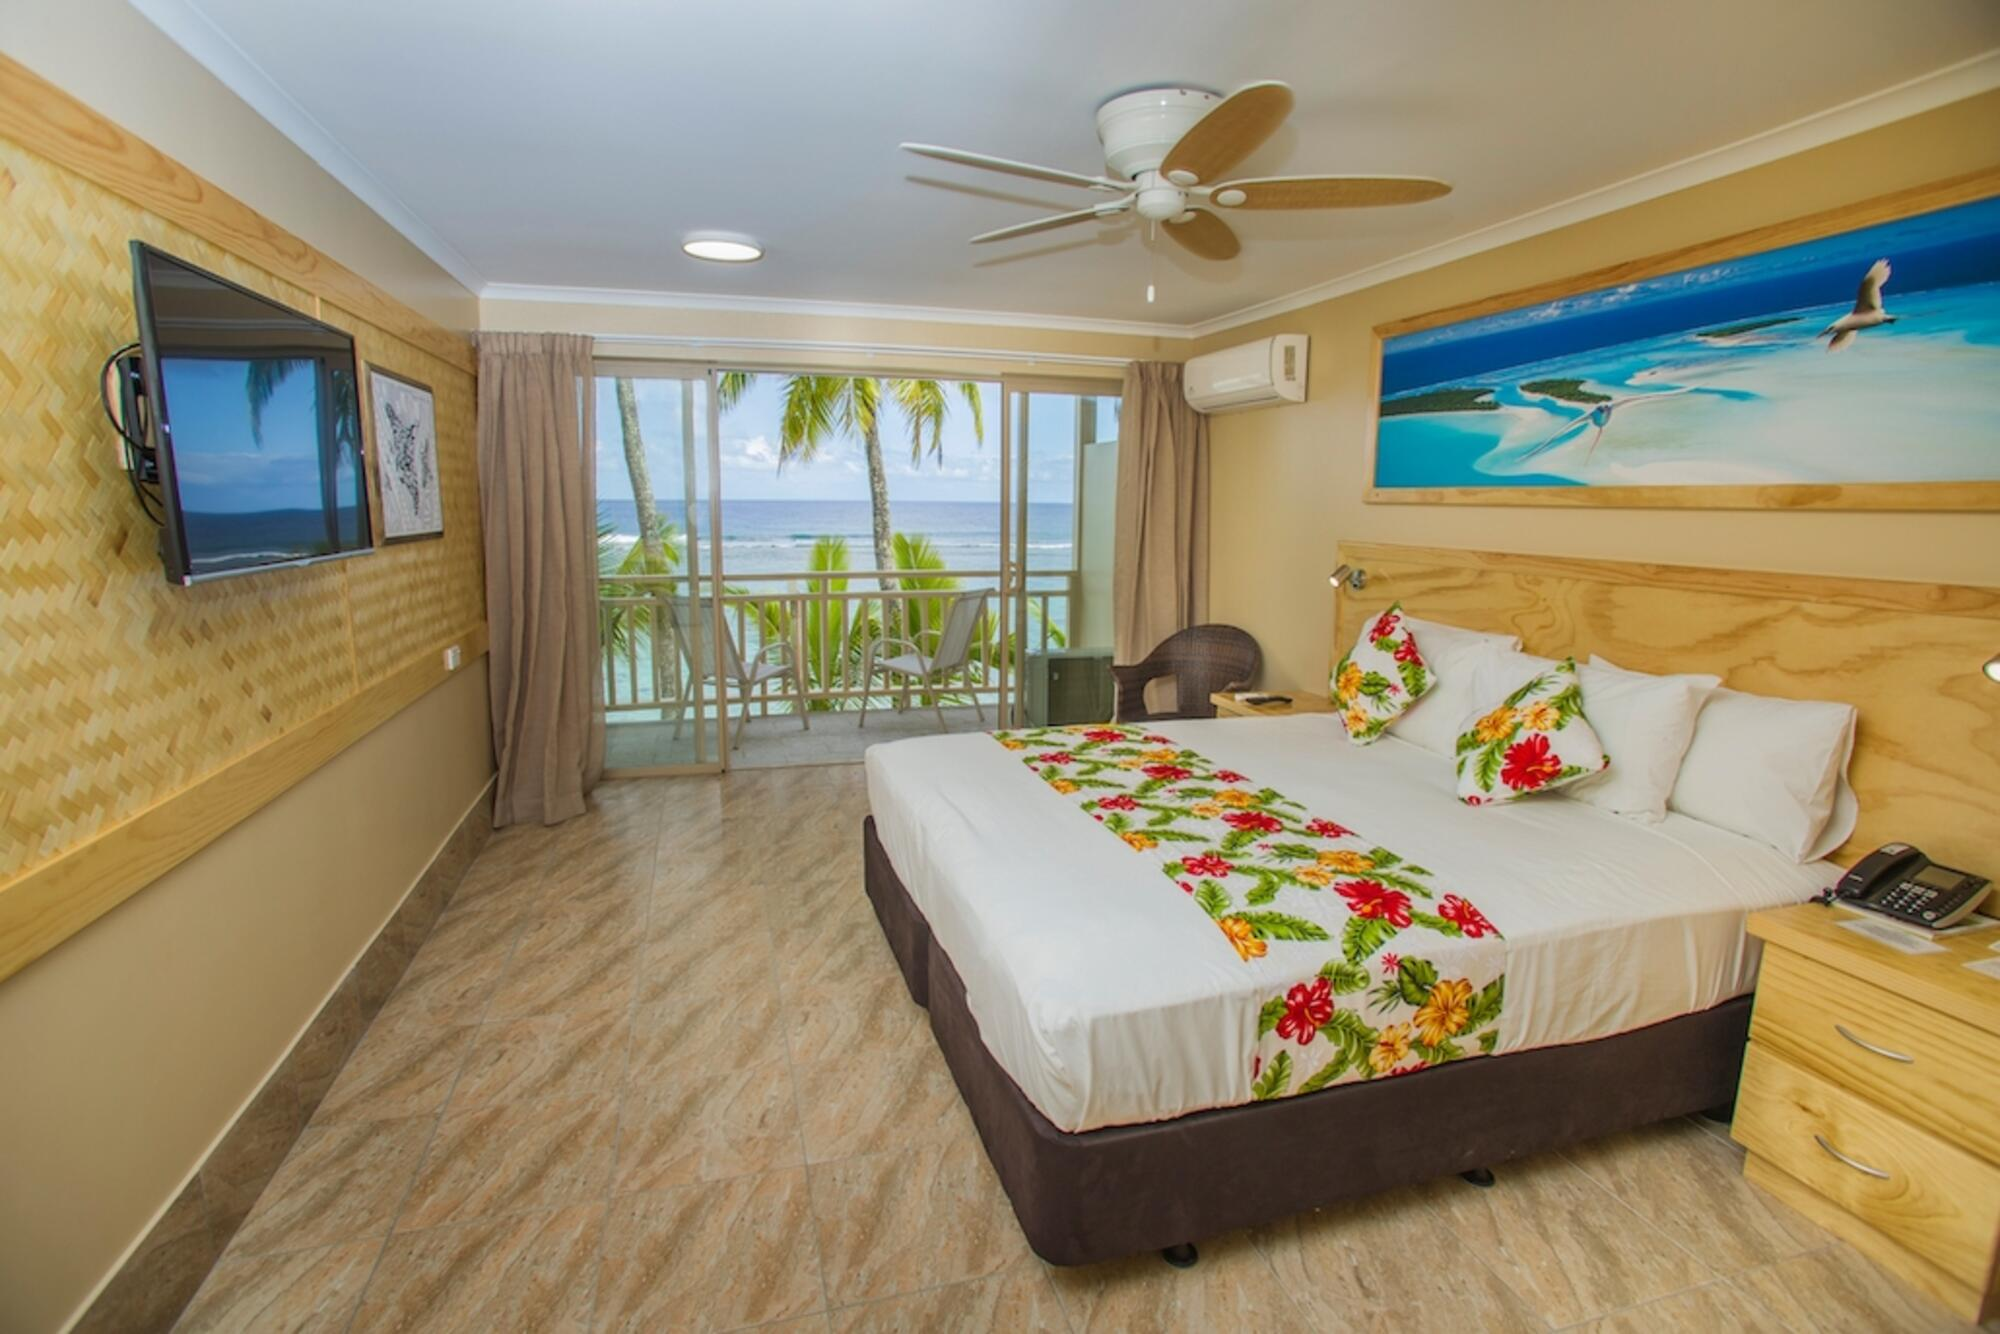 Edgewater Resort and Spa's beach front room